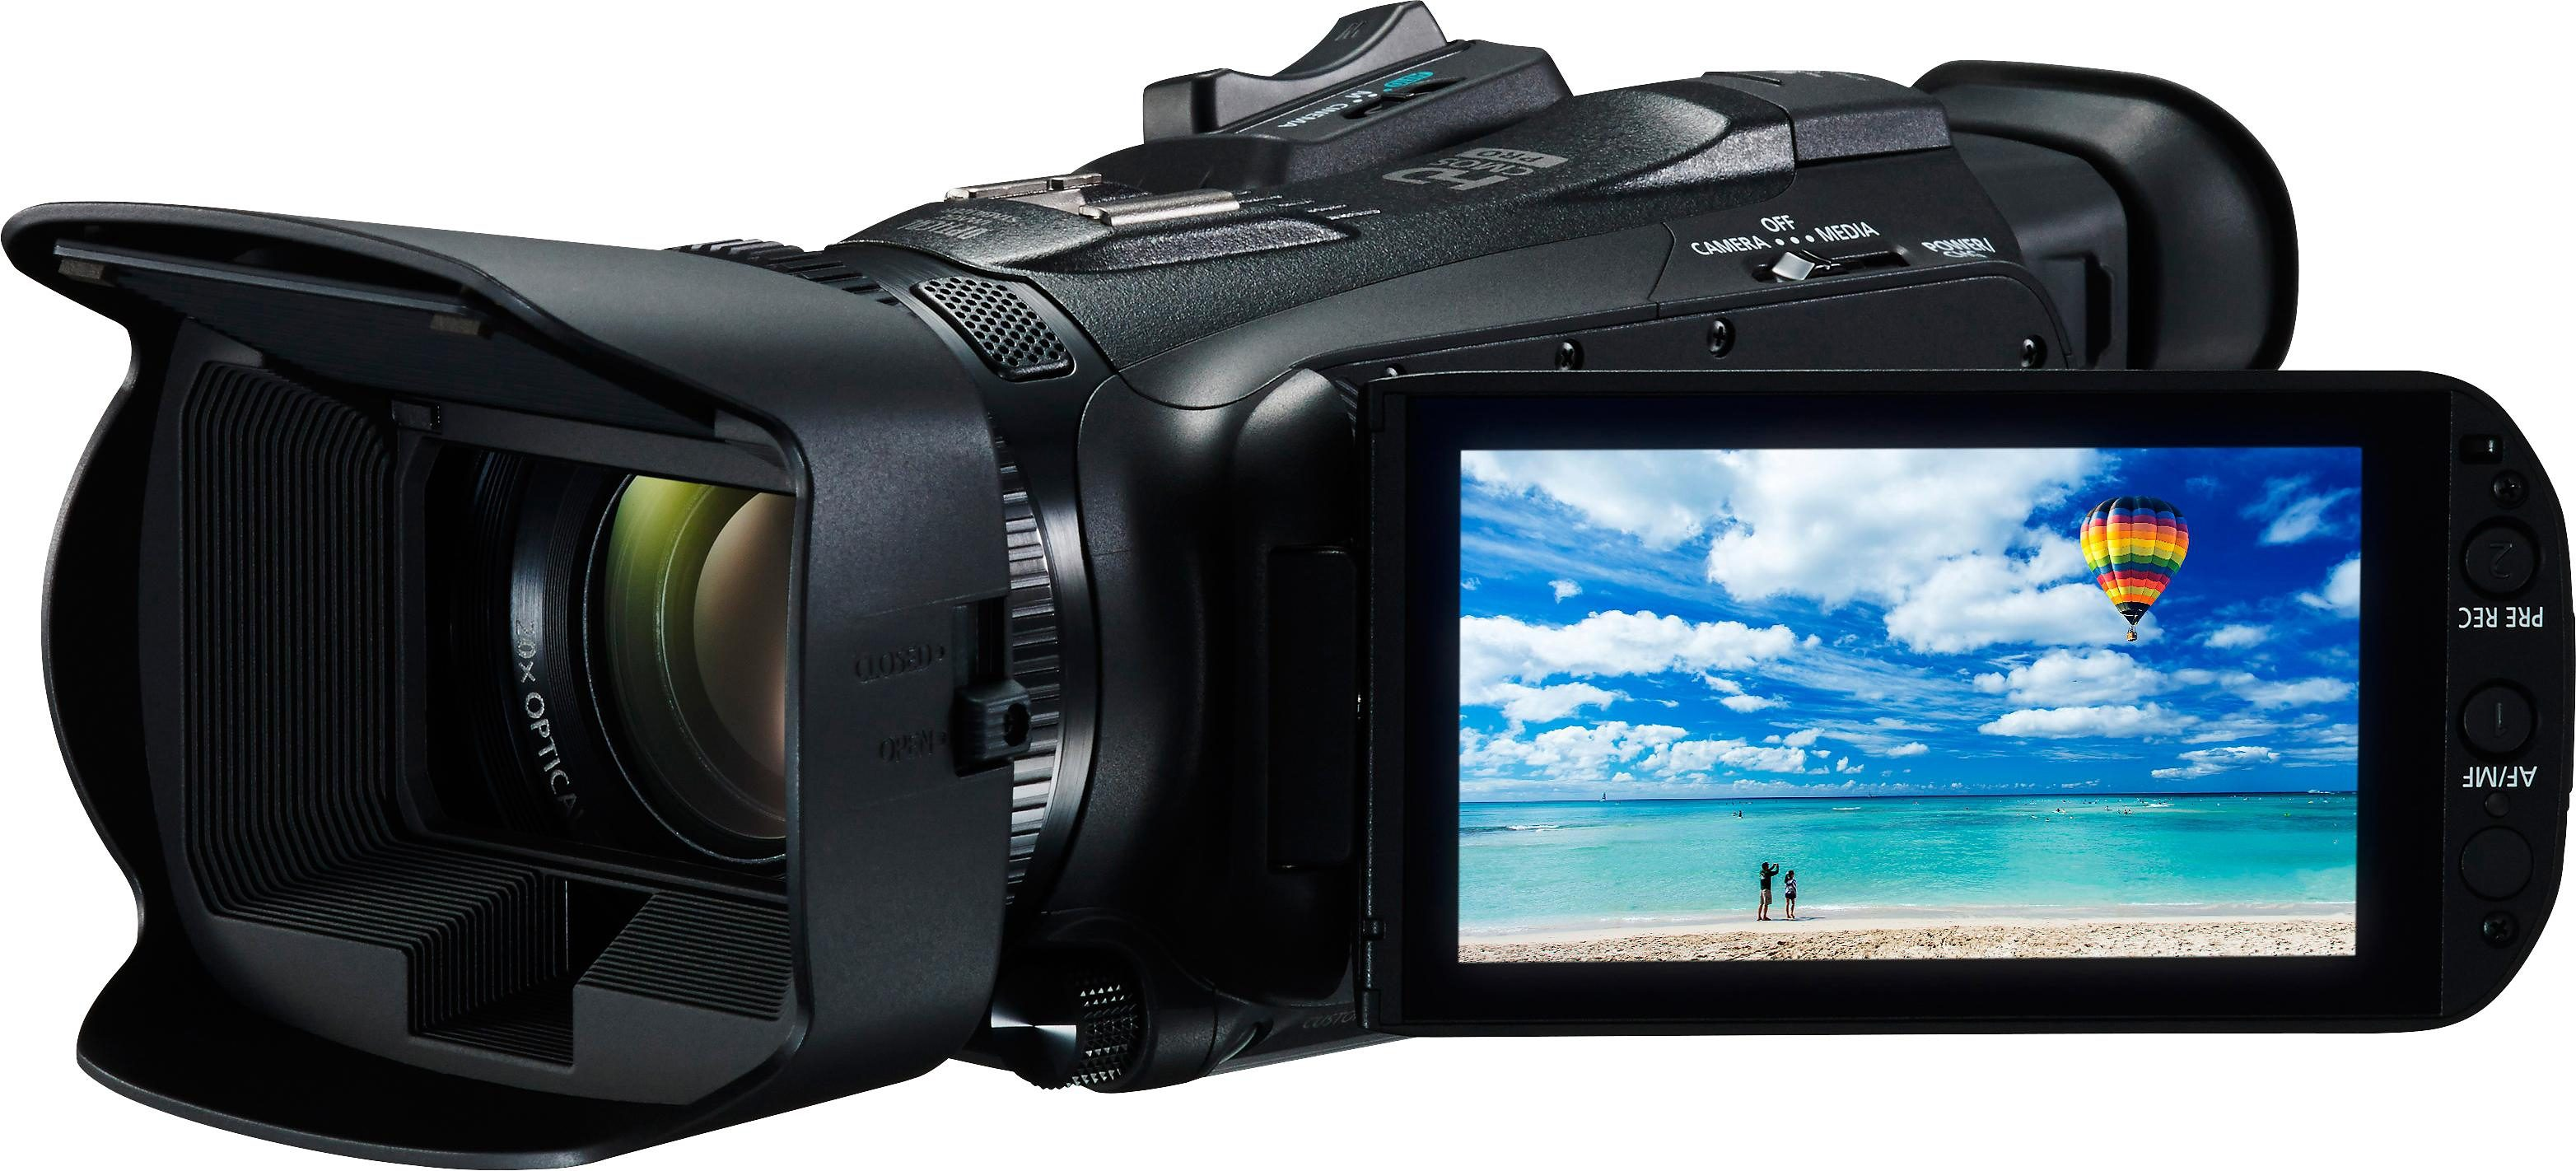 Canon LEGRIA HF-G40 1080p (Full HD) Camcorder, WLAN